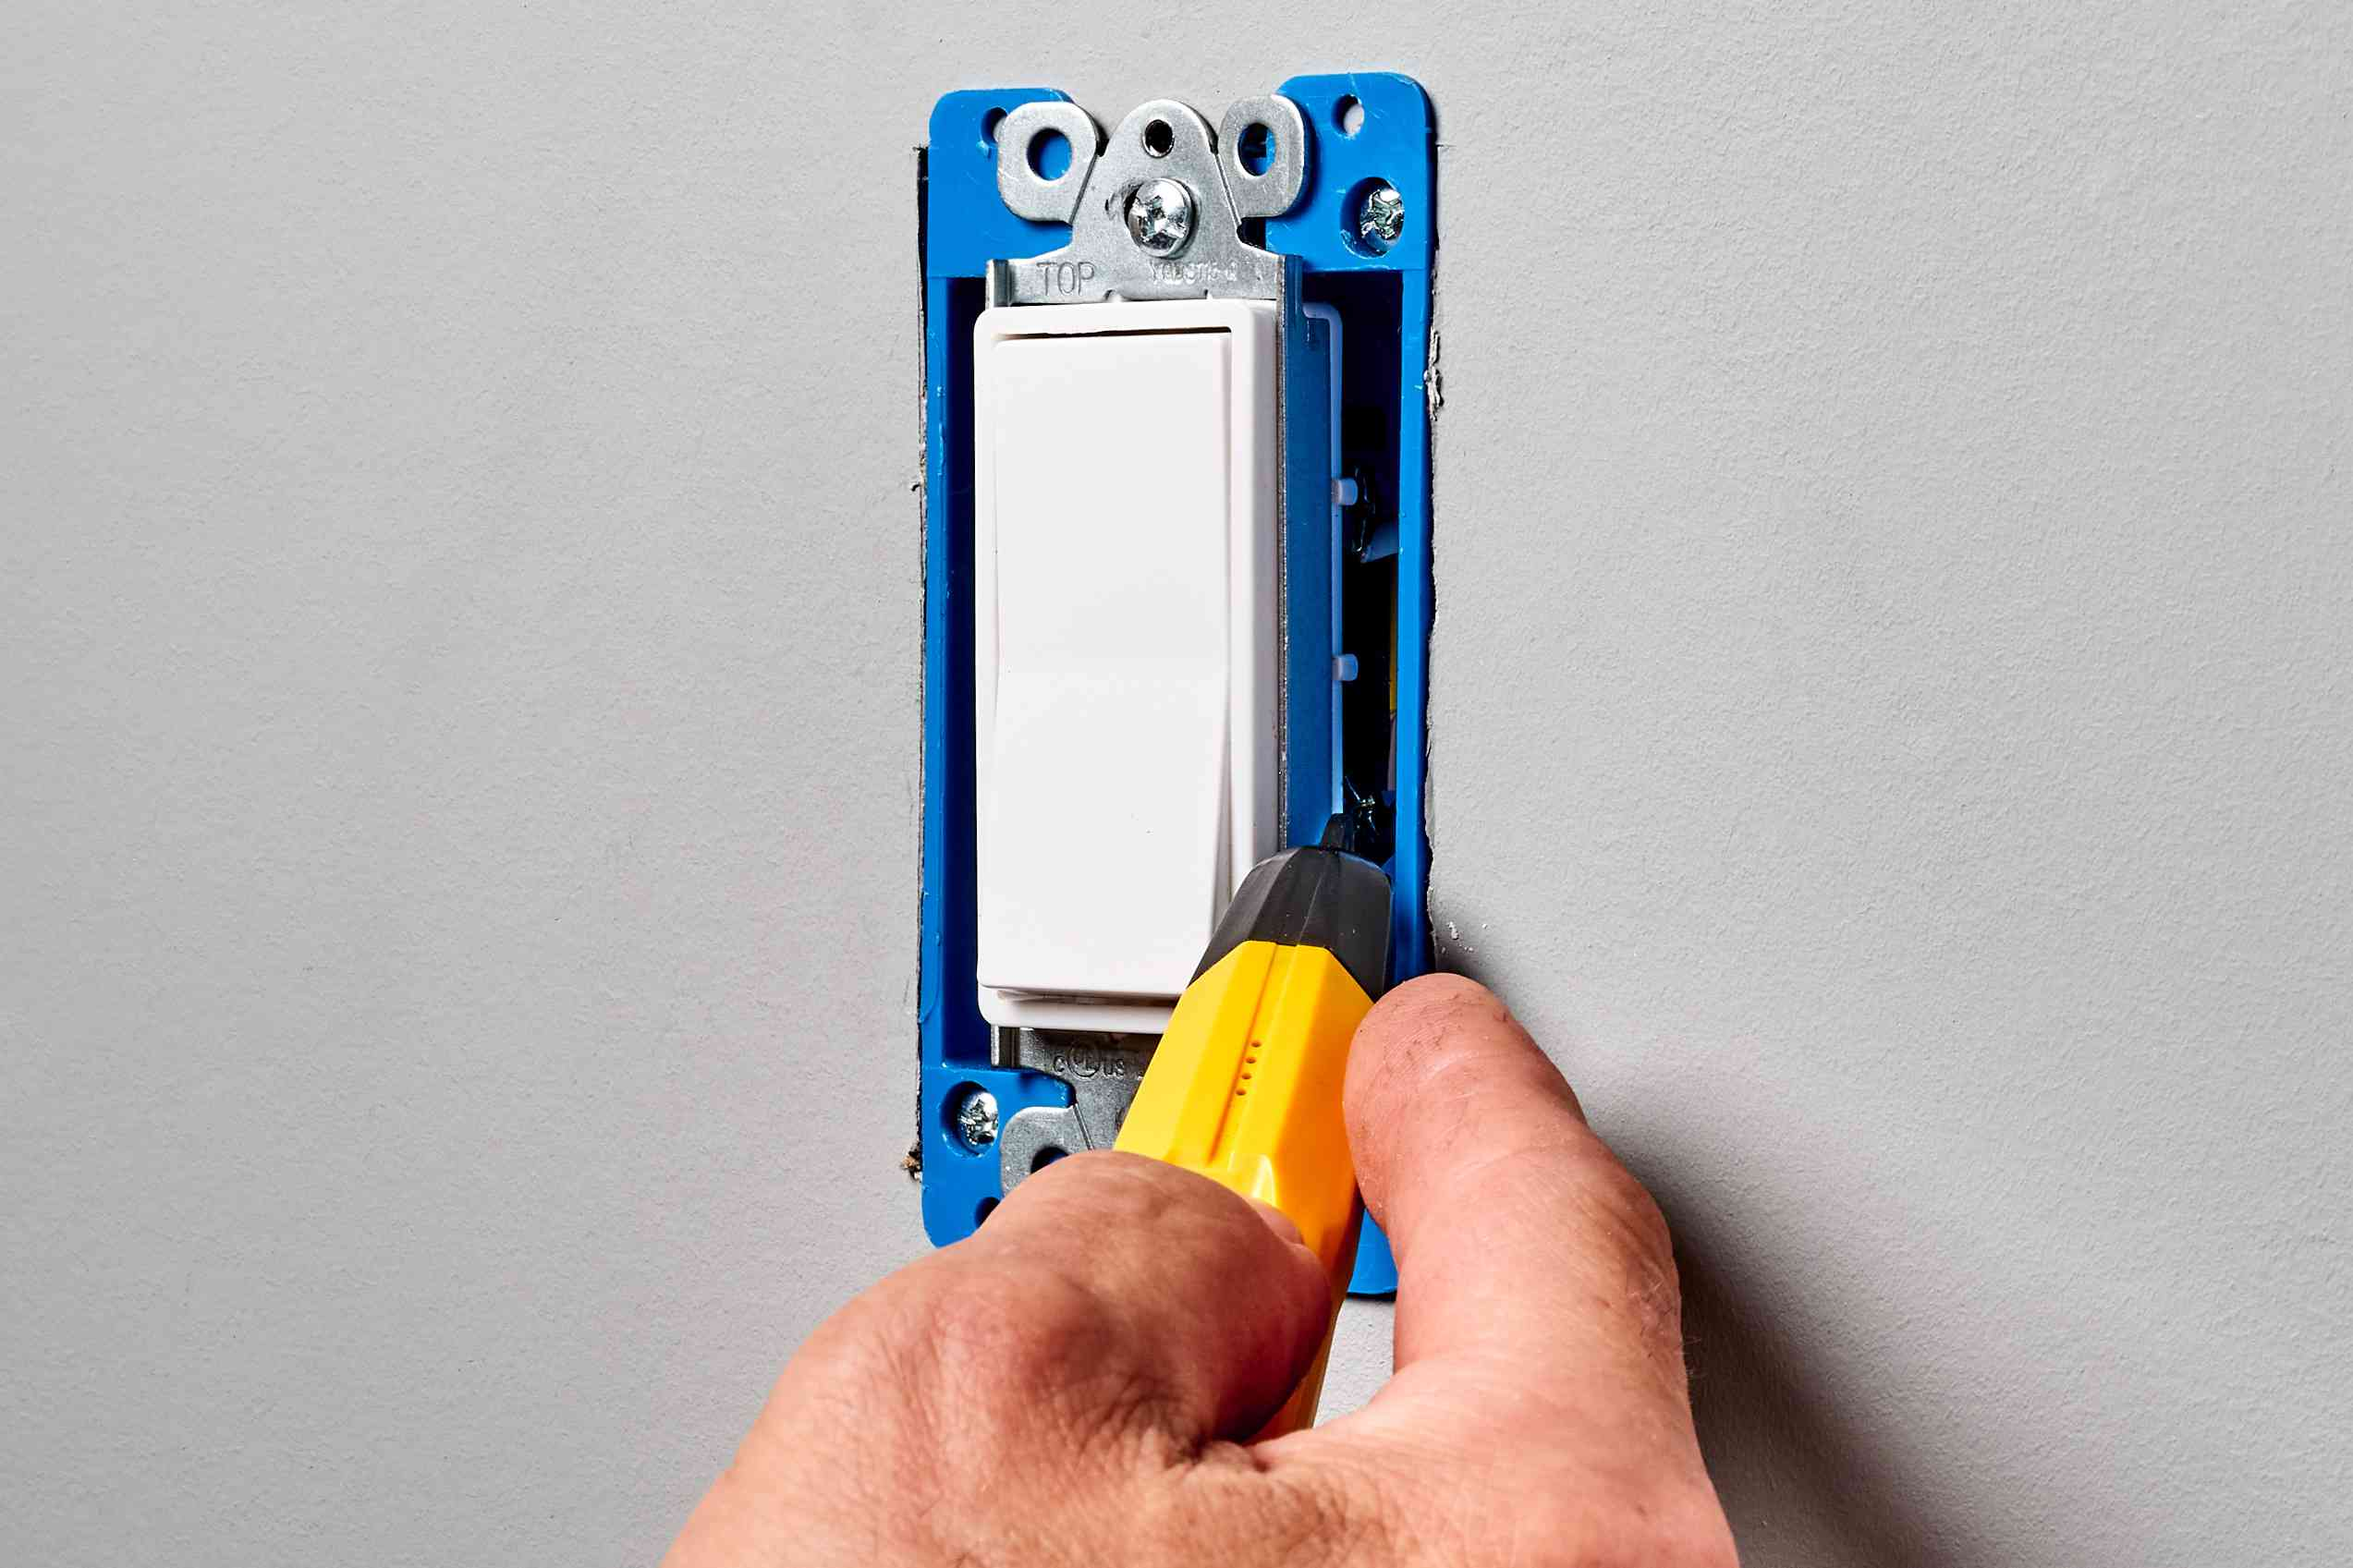 Wall switch's cover plate removed and tested for power with non-contact circuit tester